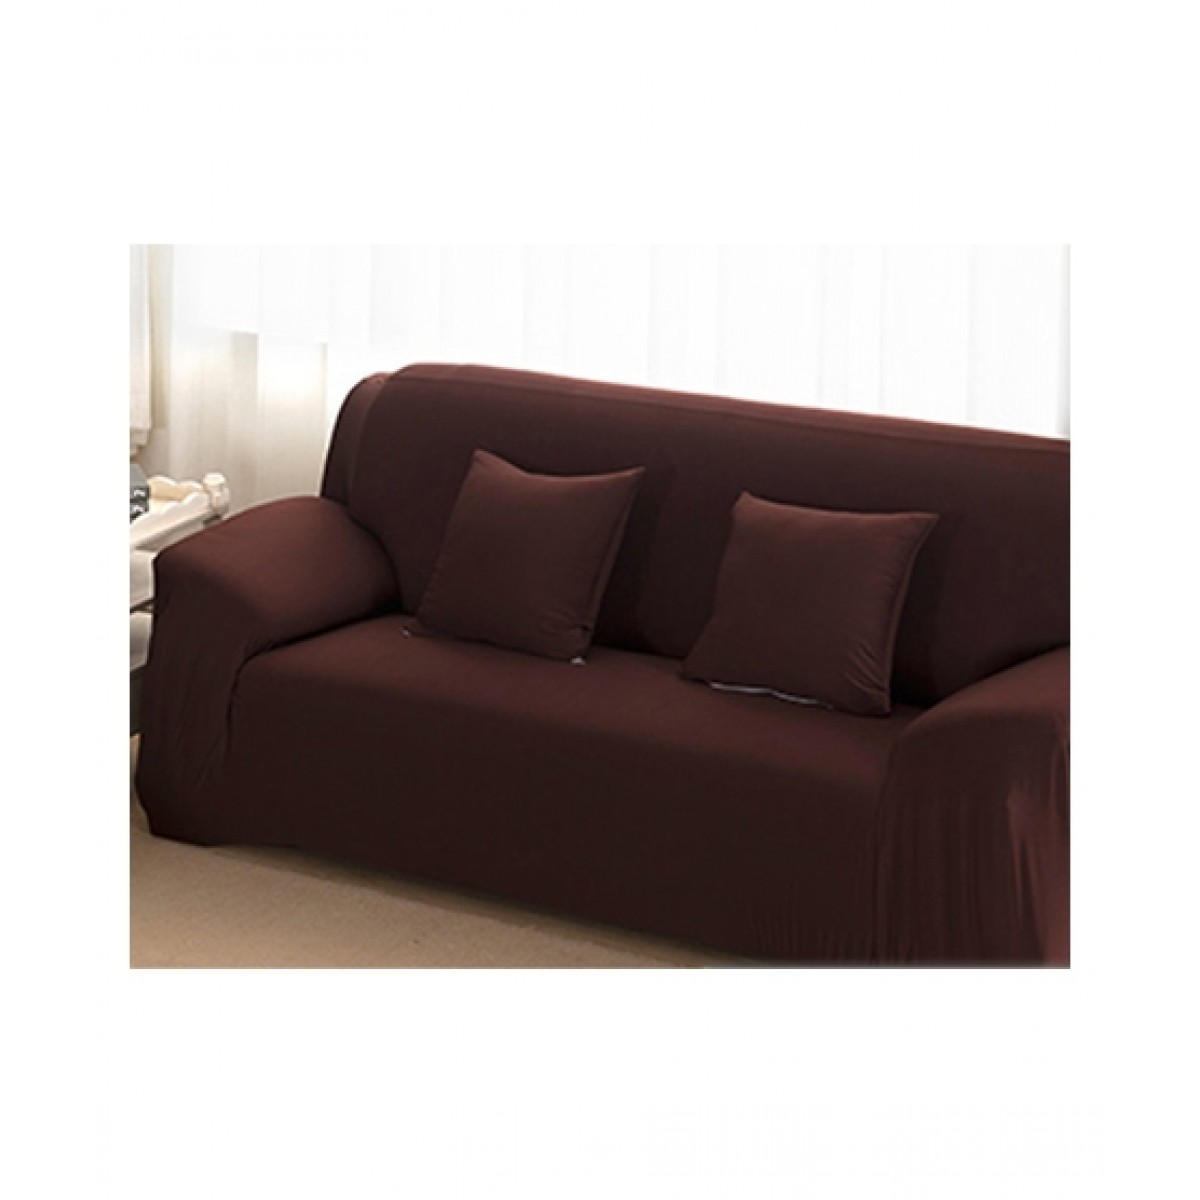 Knit that Fits 5 Seater Sofa Cover - Brown